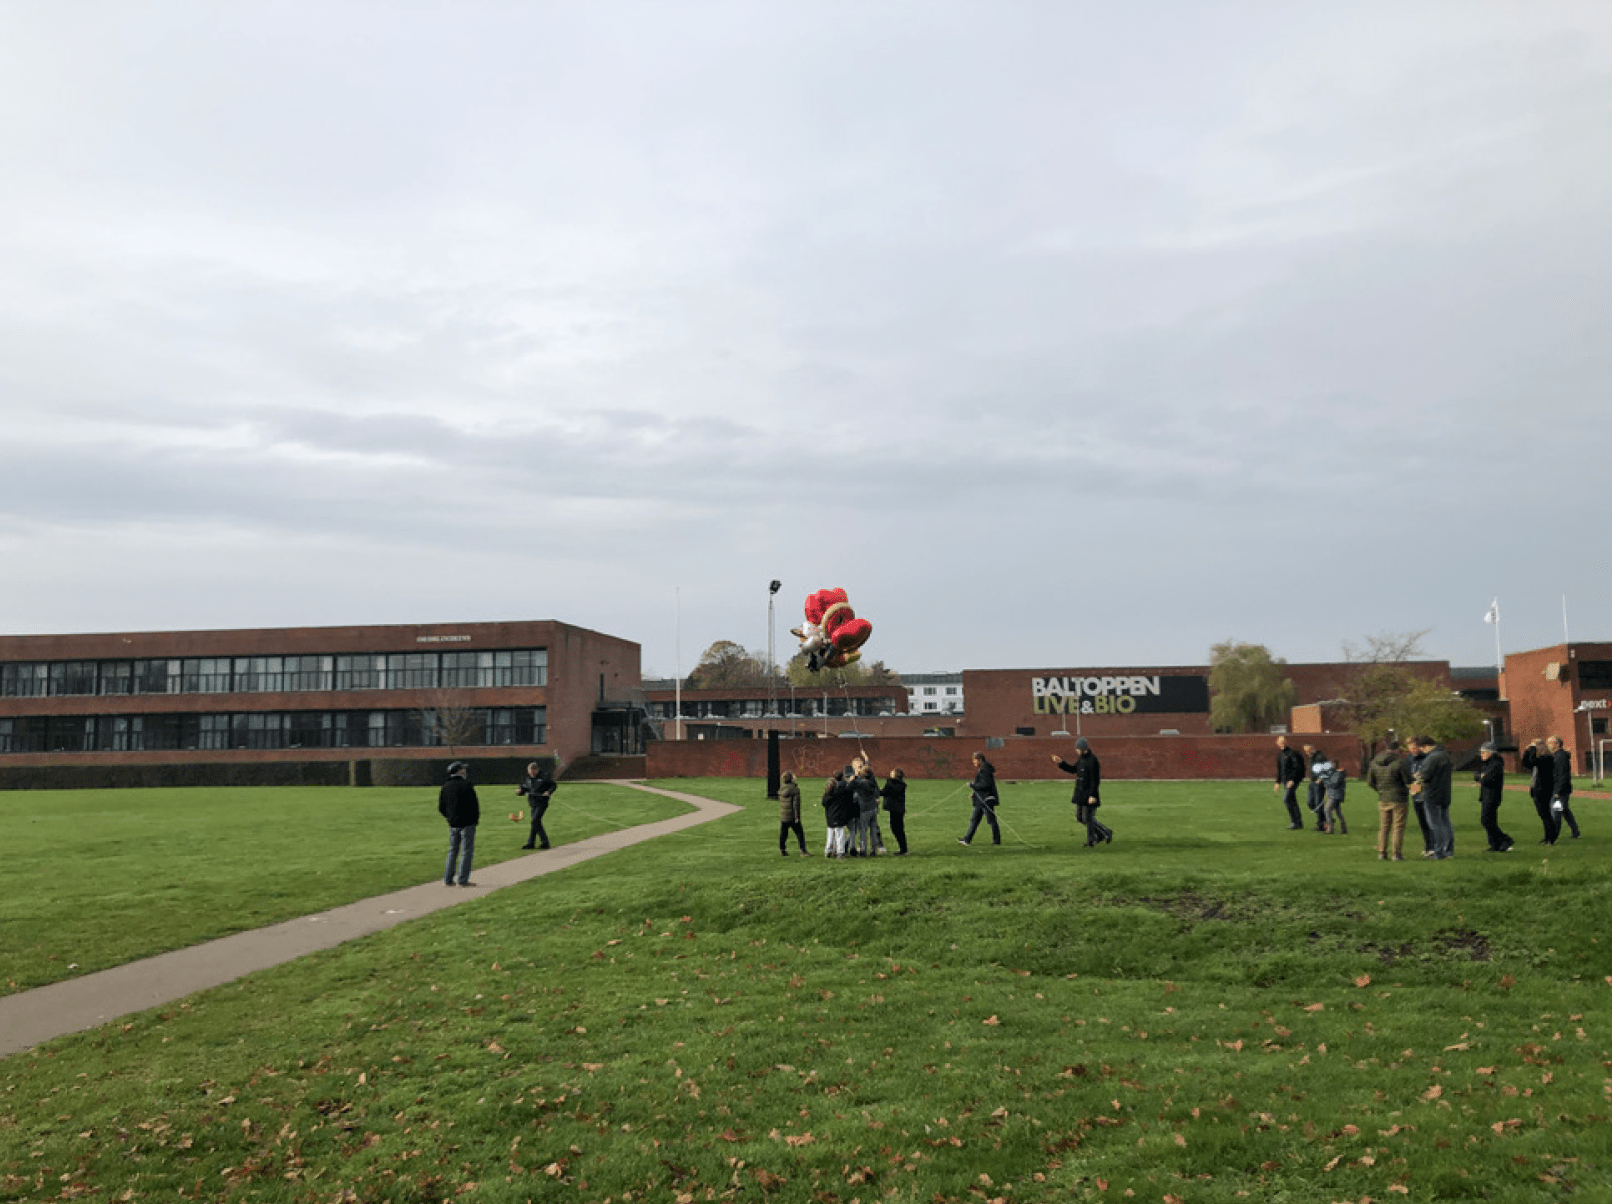 Our friends at Ballerup Public Library in Denmark selected an exemplary launch site!